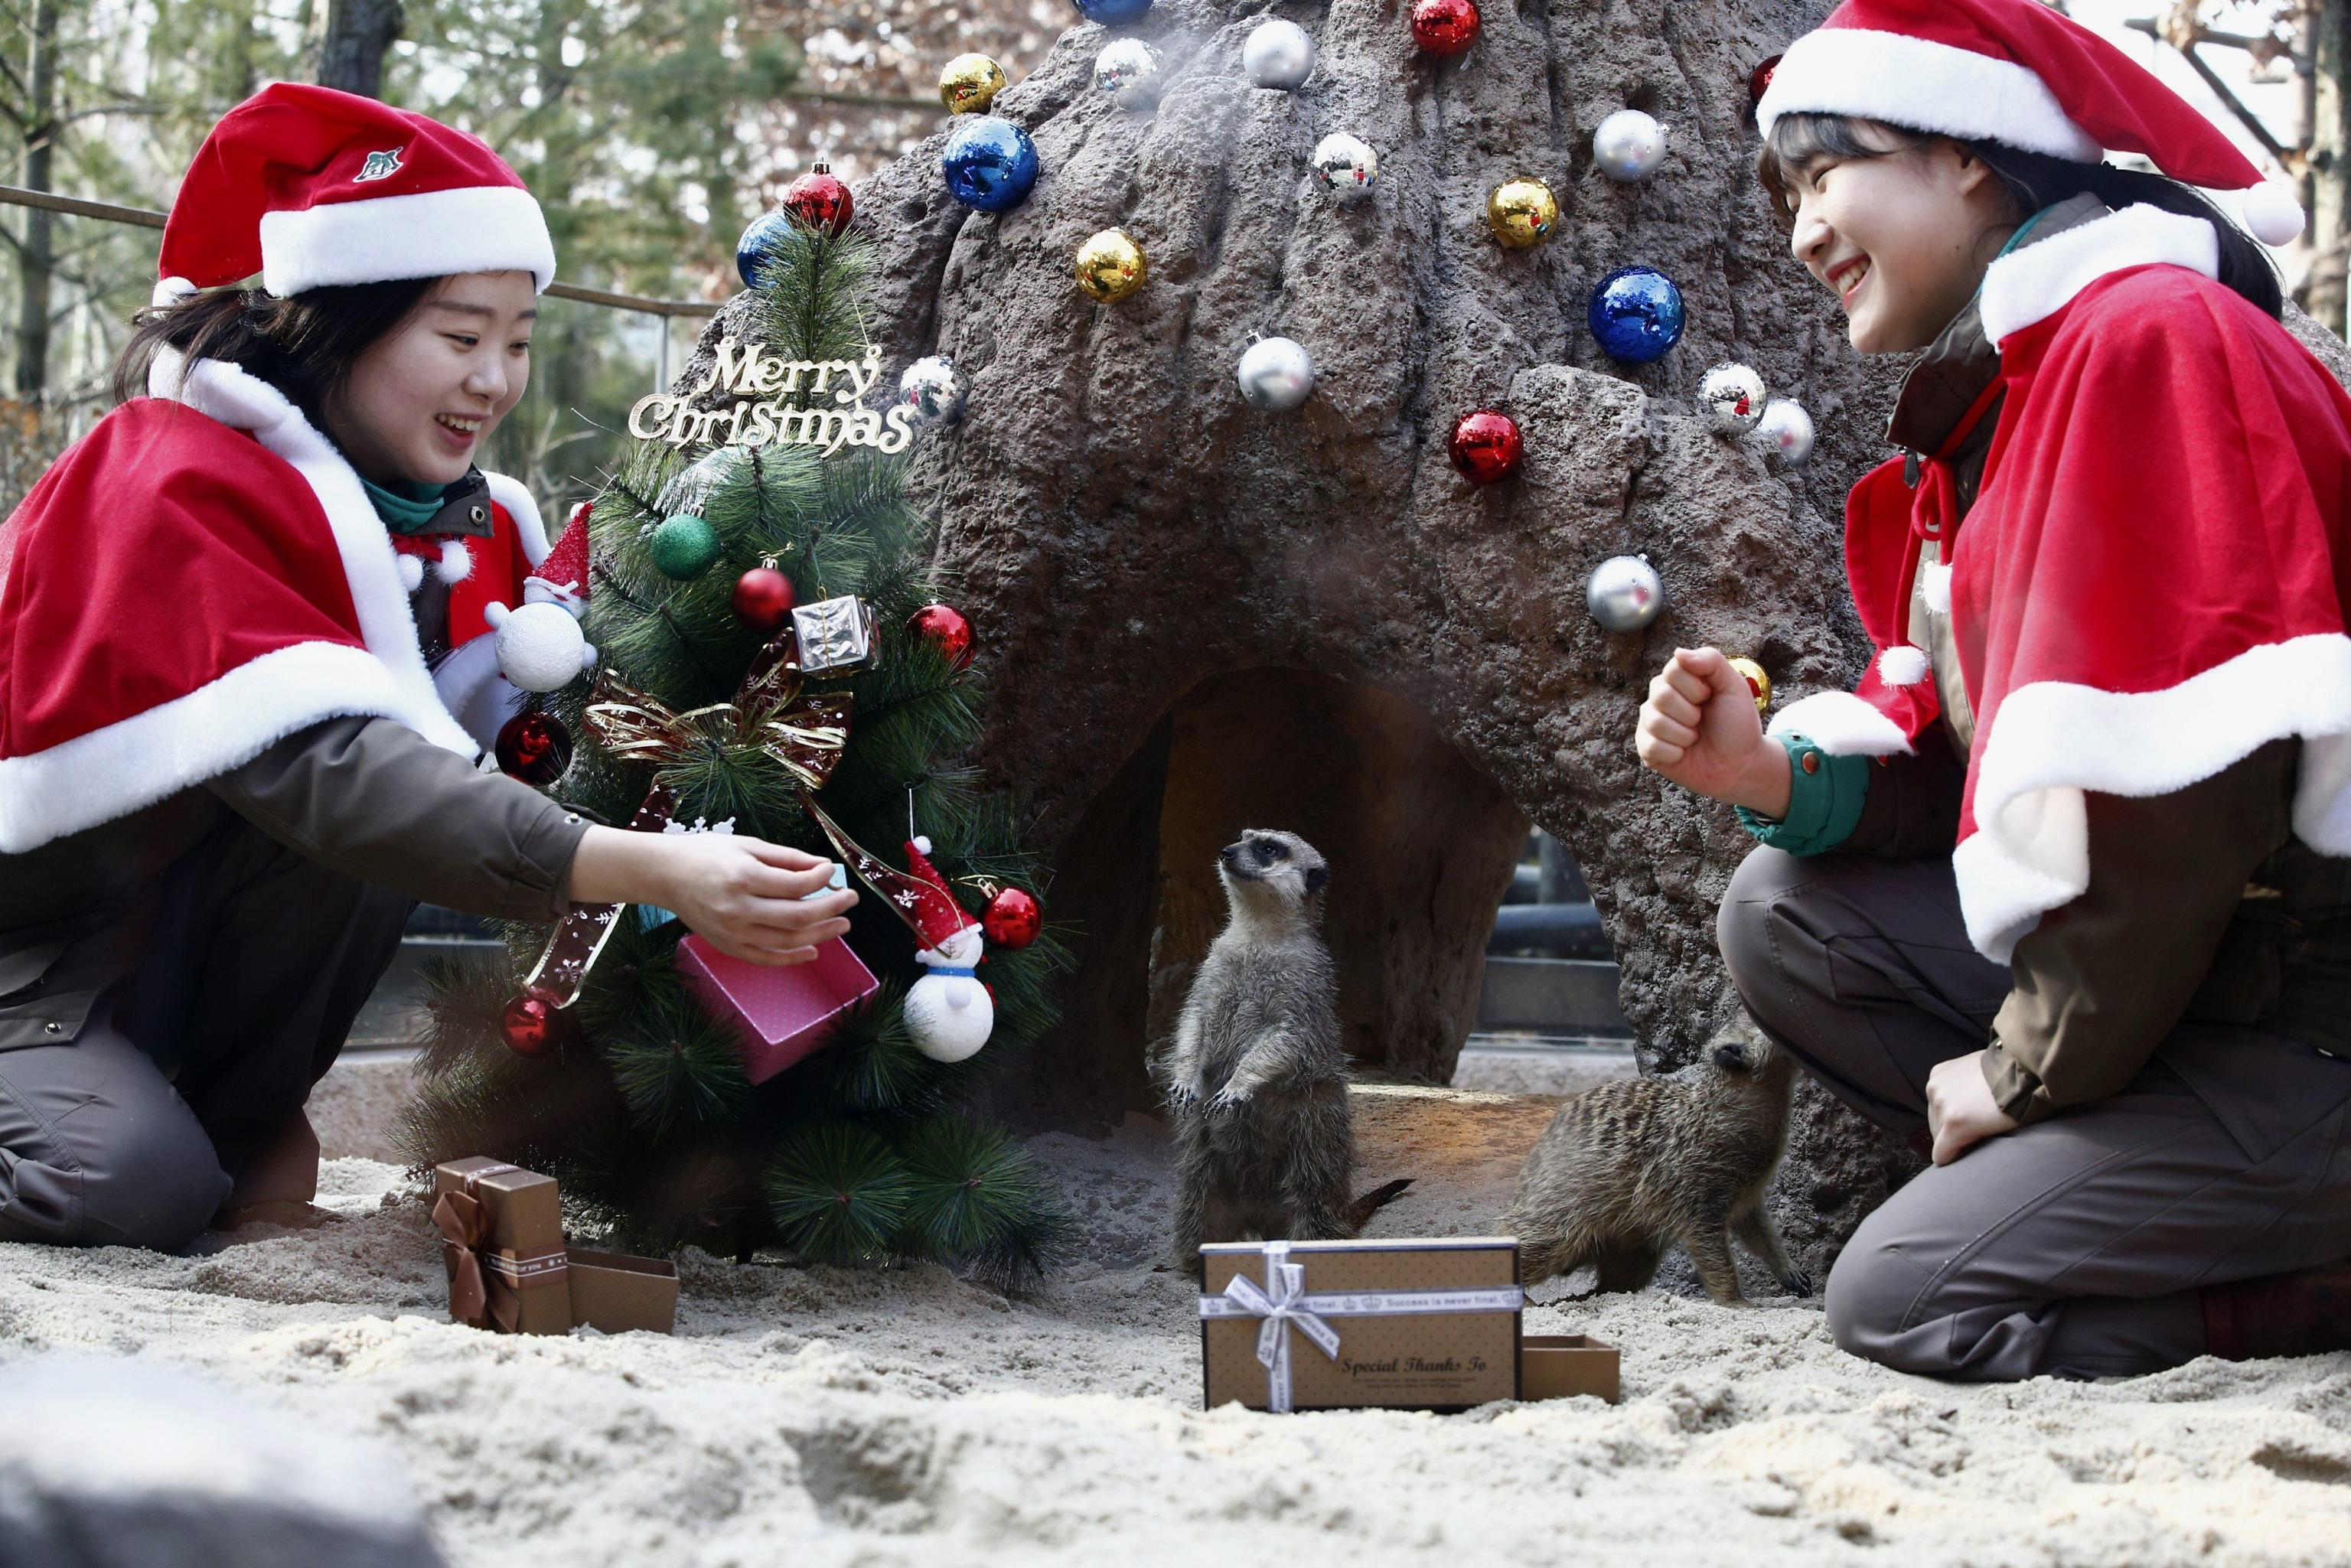 South Korean Everland amusement park employees wearing Santa Claus hats and collars decorate a Christmas tree in the Meerkat enclosure on the occasion of the Christmas holiday season at South Korea's largest amusment park 'Everland'